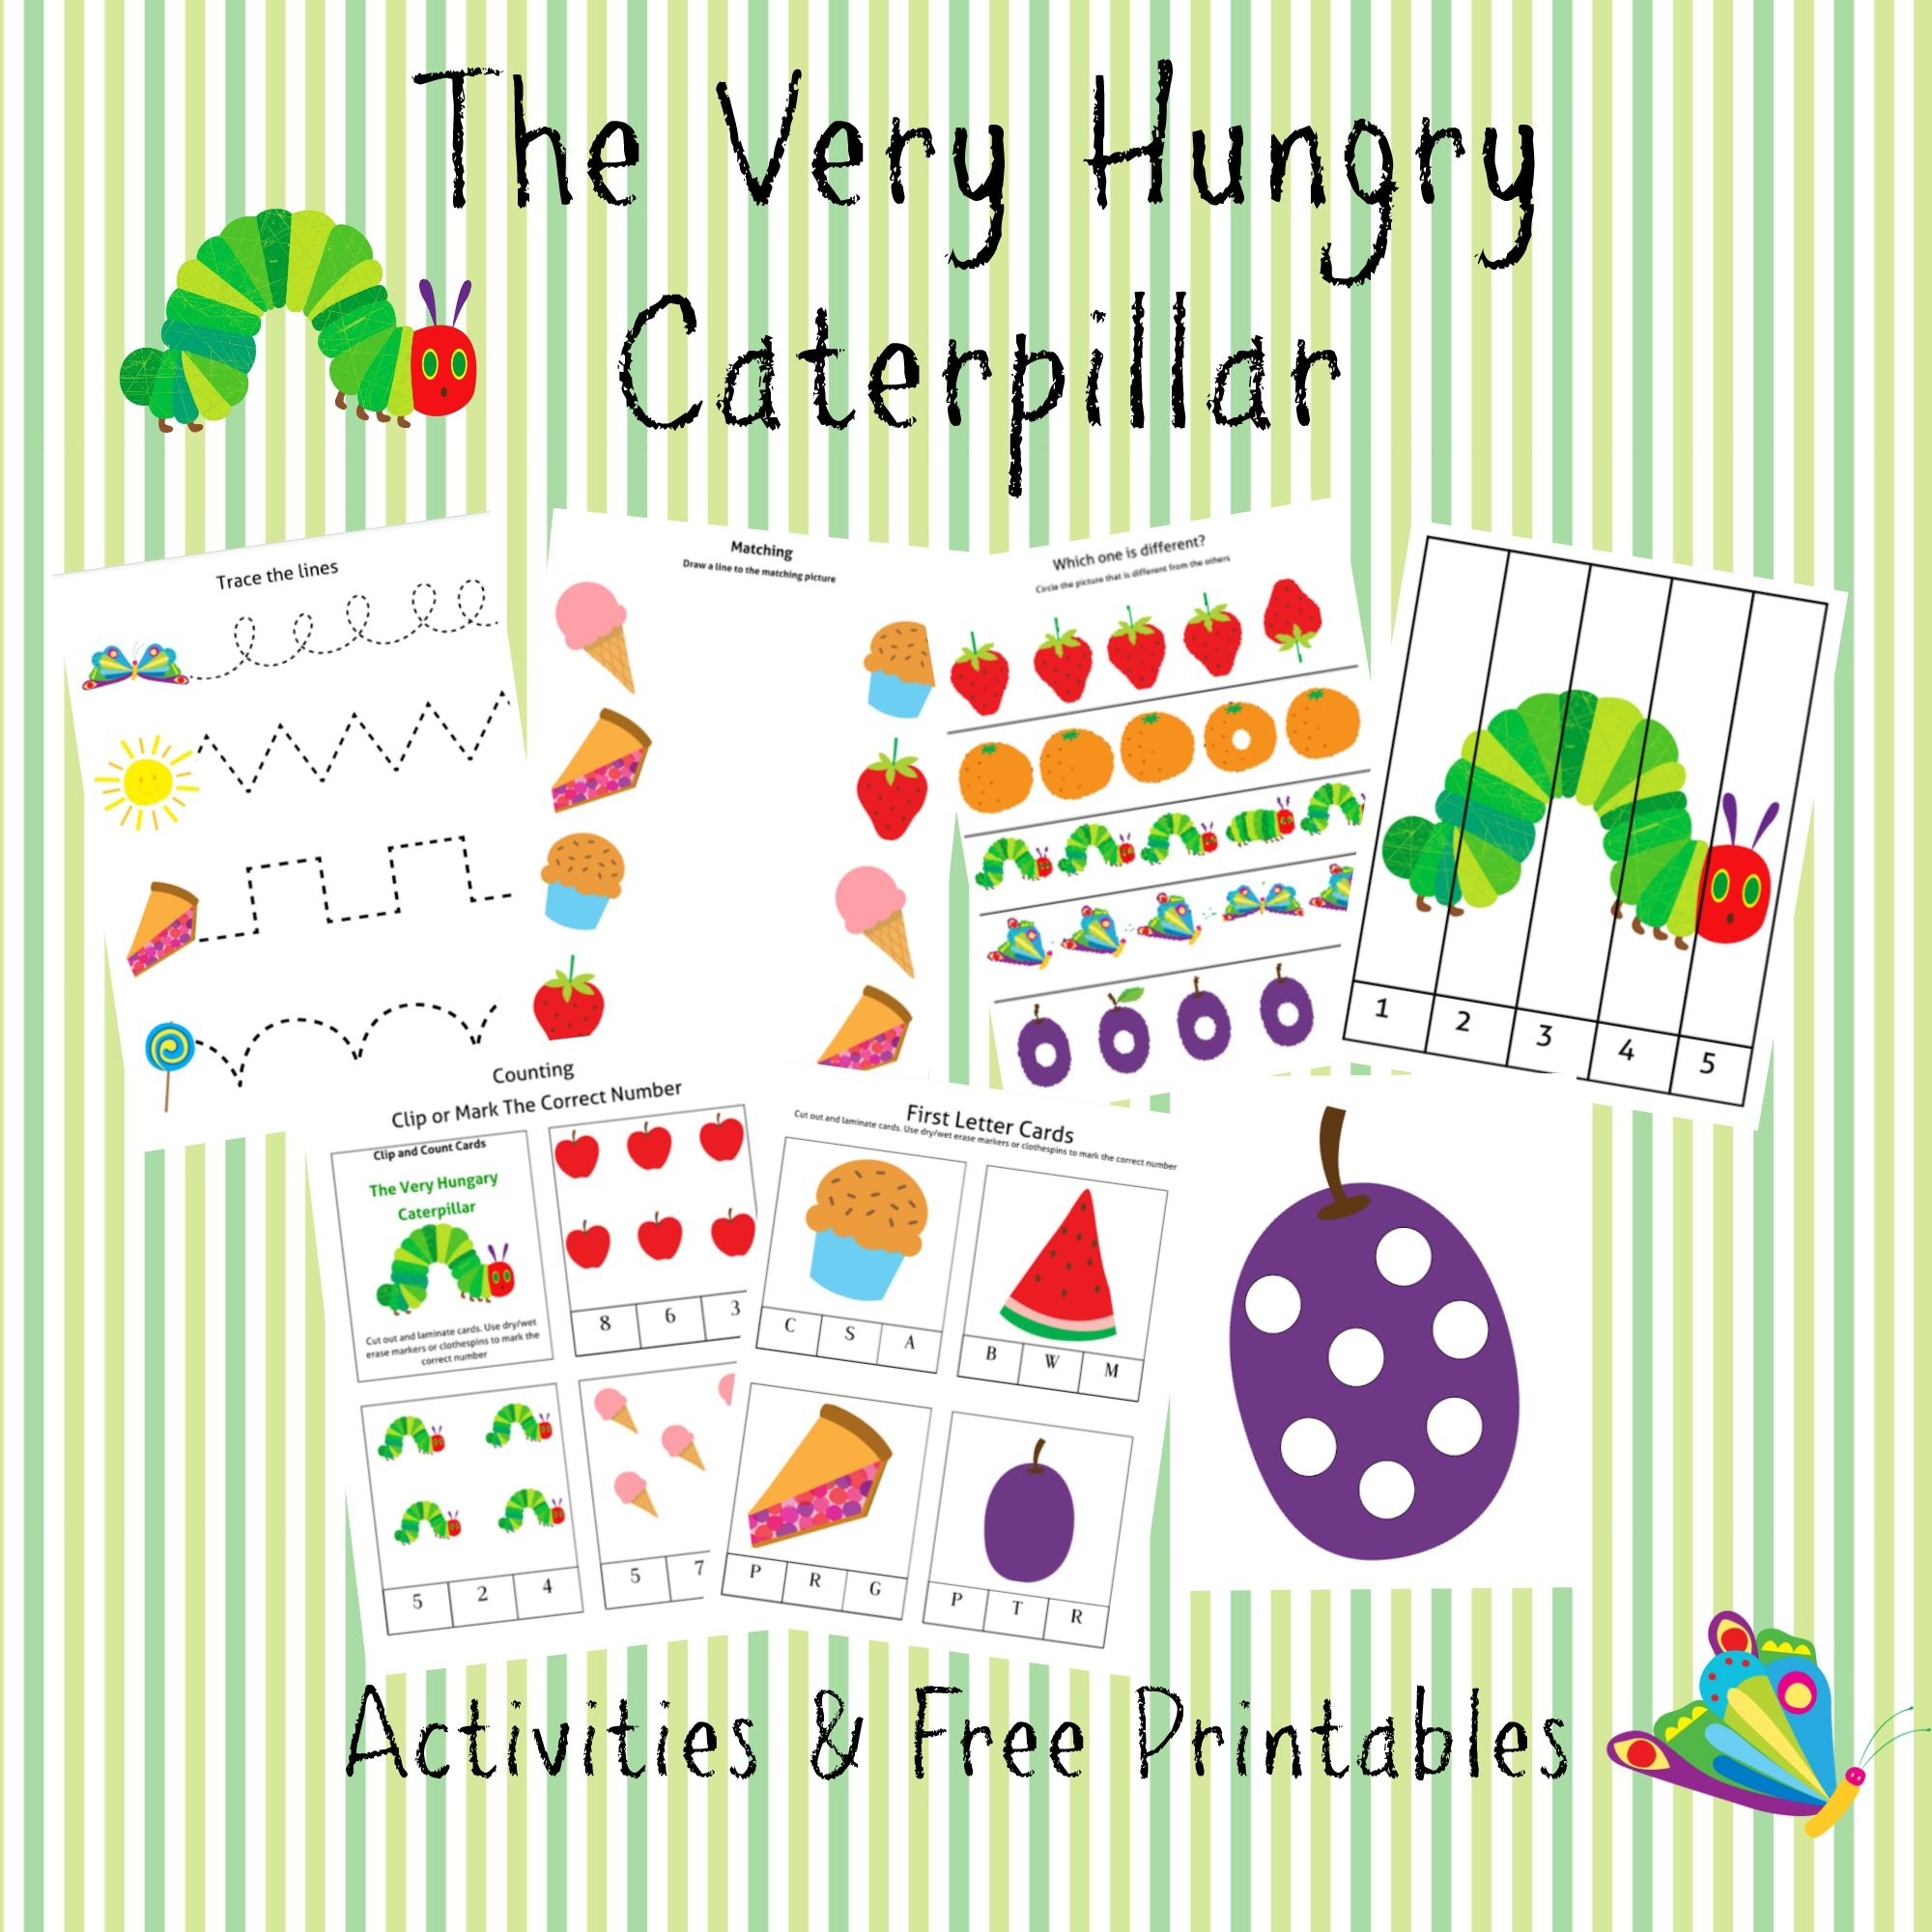 The Very Hungry Caterpillar Printable - 96 Total Pages - The Very Hungry Caterpillar Free Printables